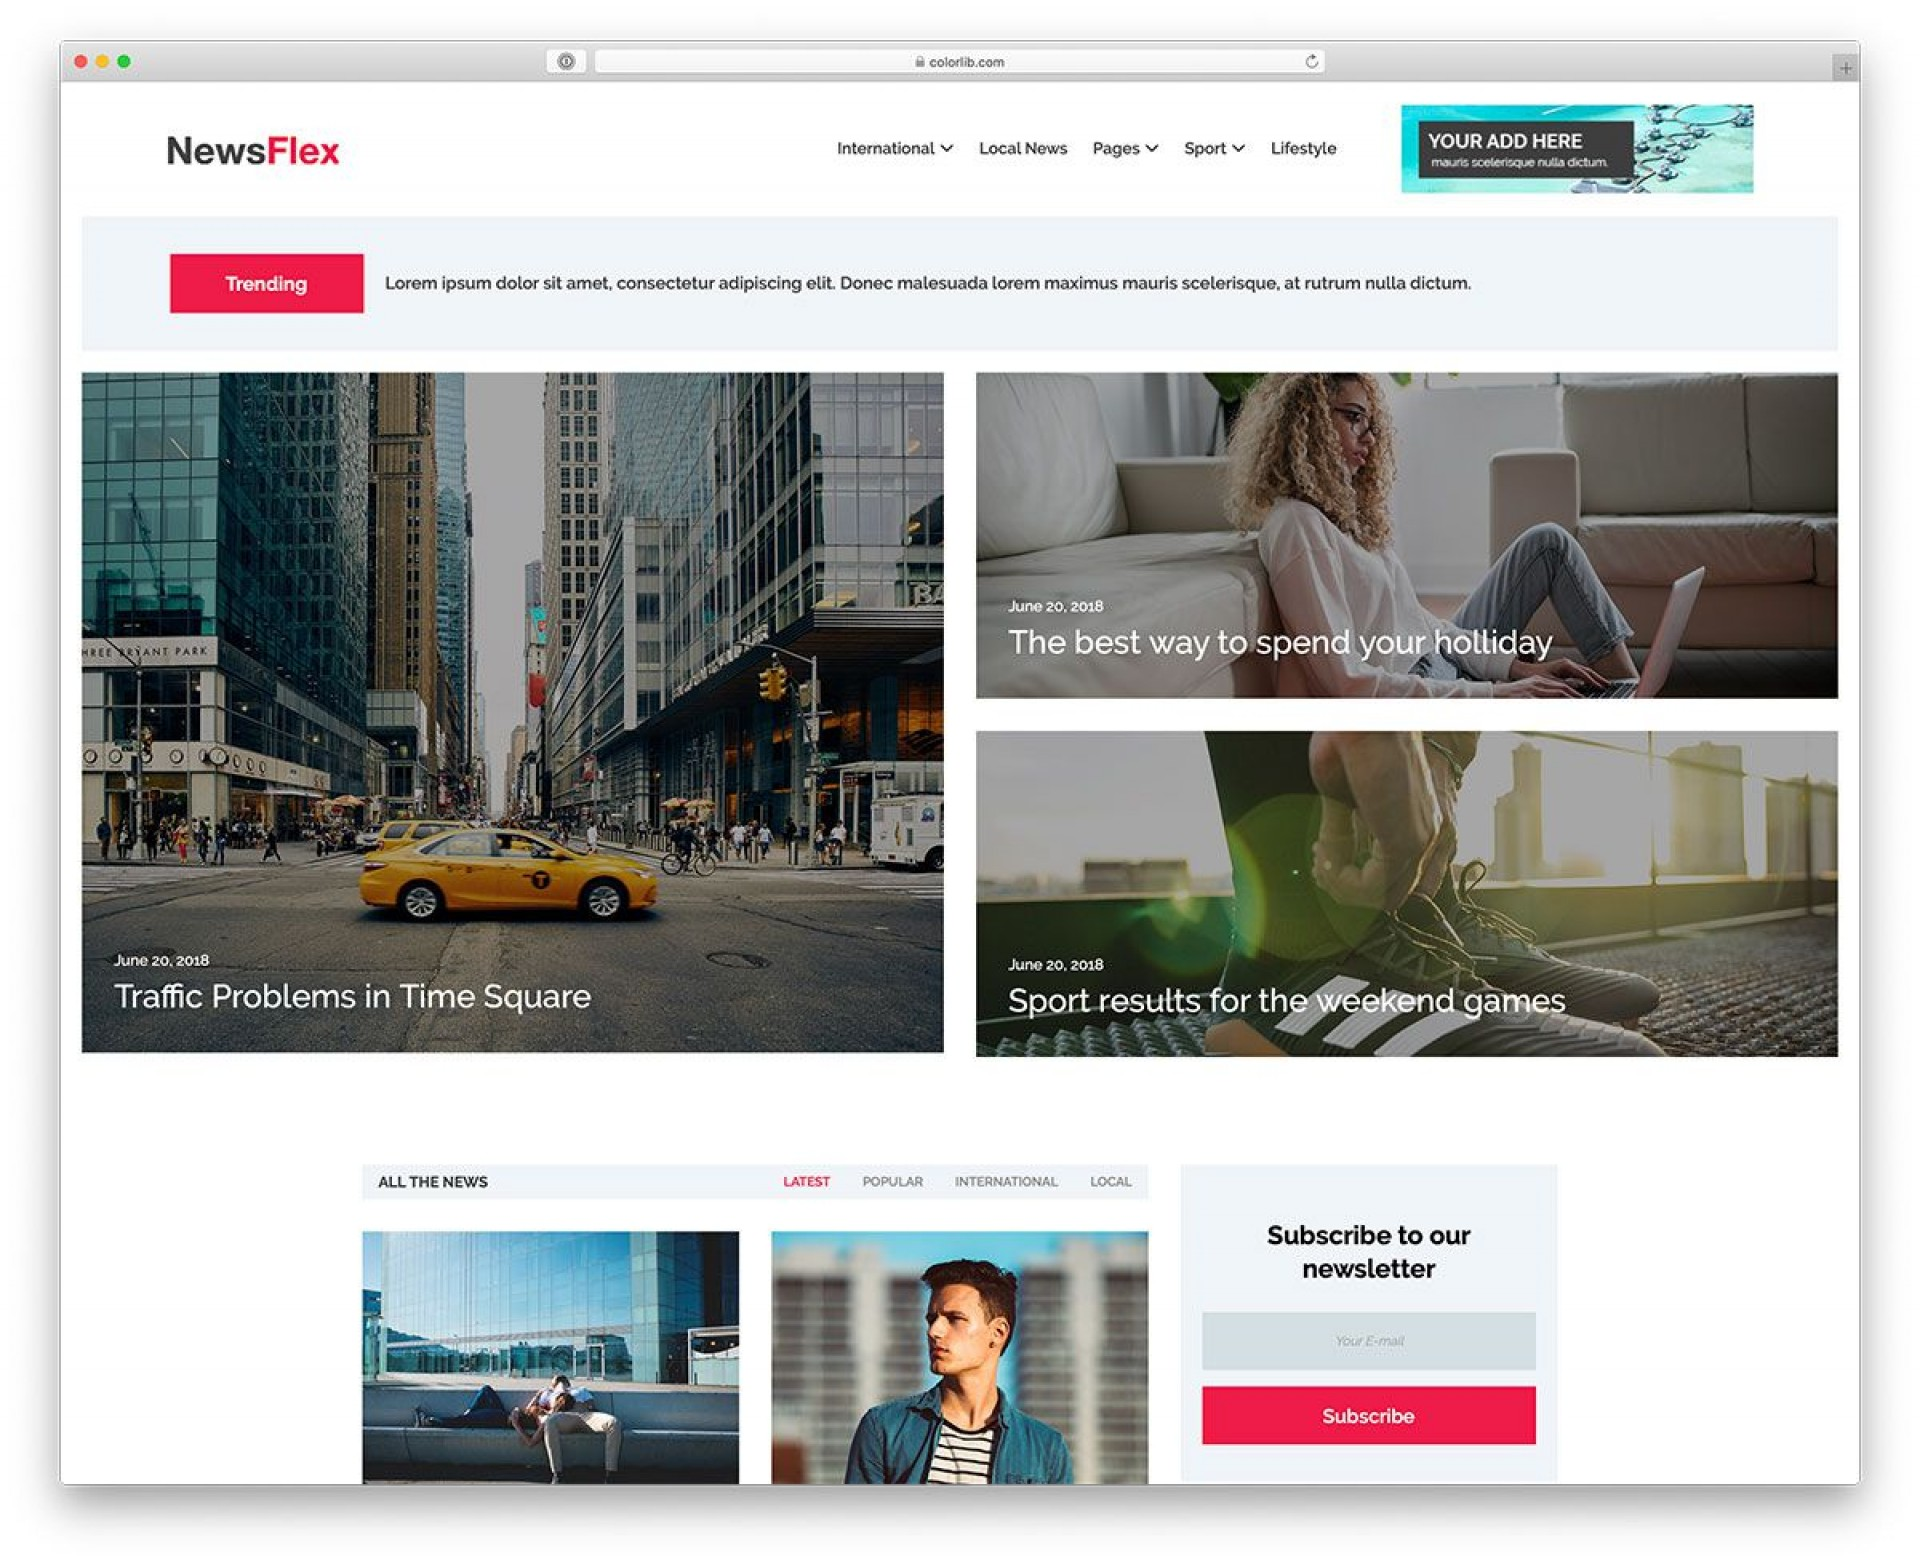 008 Staggering Free Flash Website Template Picture  Templates 3d Download Intro1920